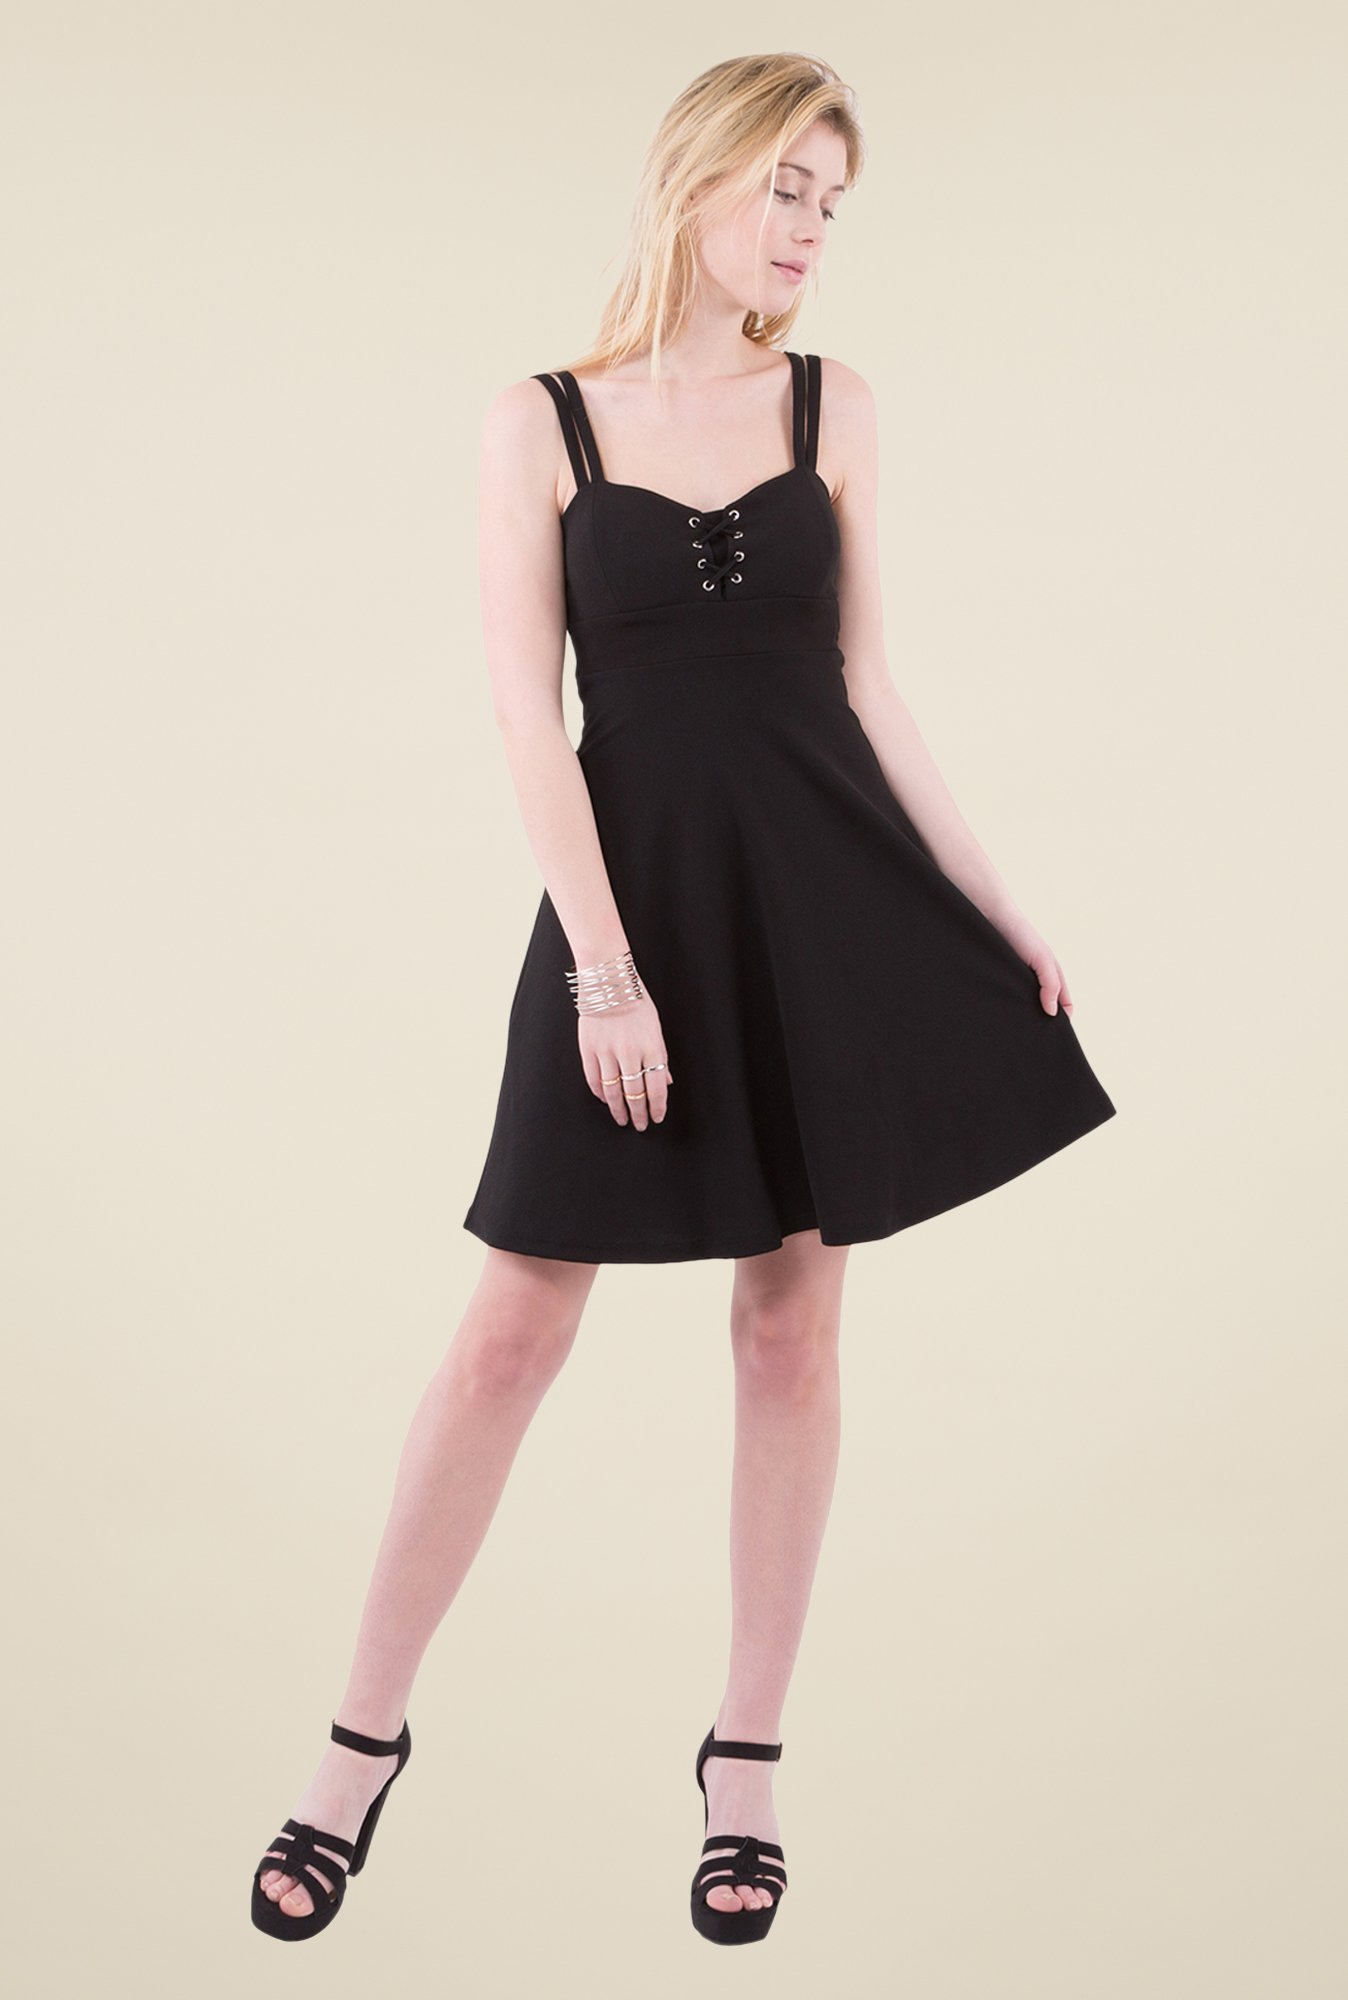 MIM Black Solid Skater dress